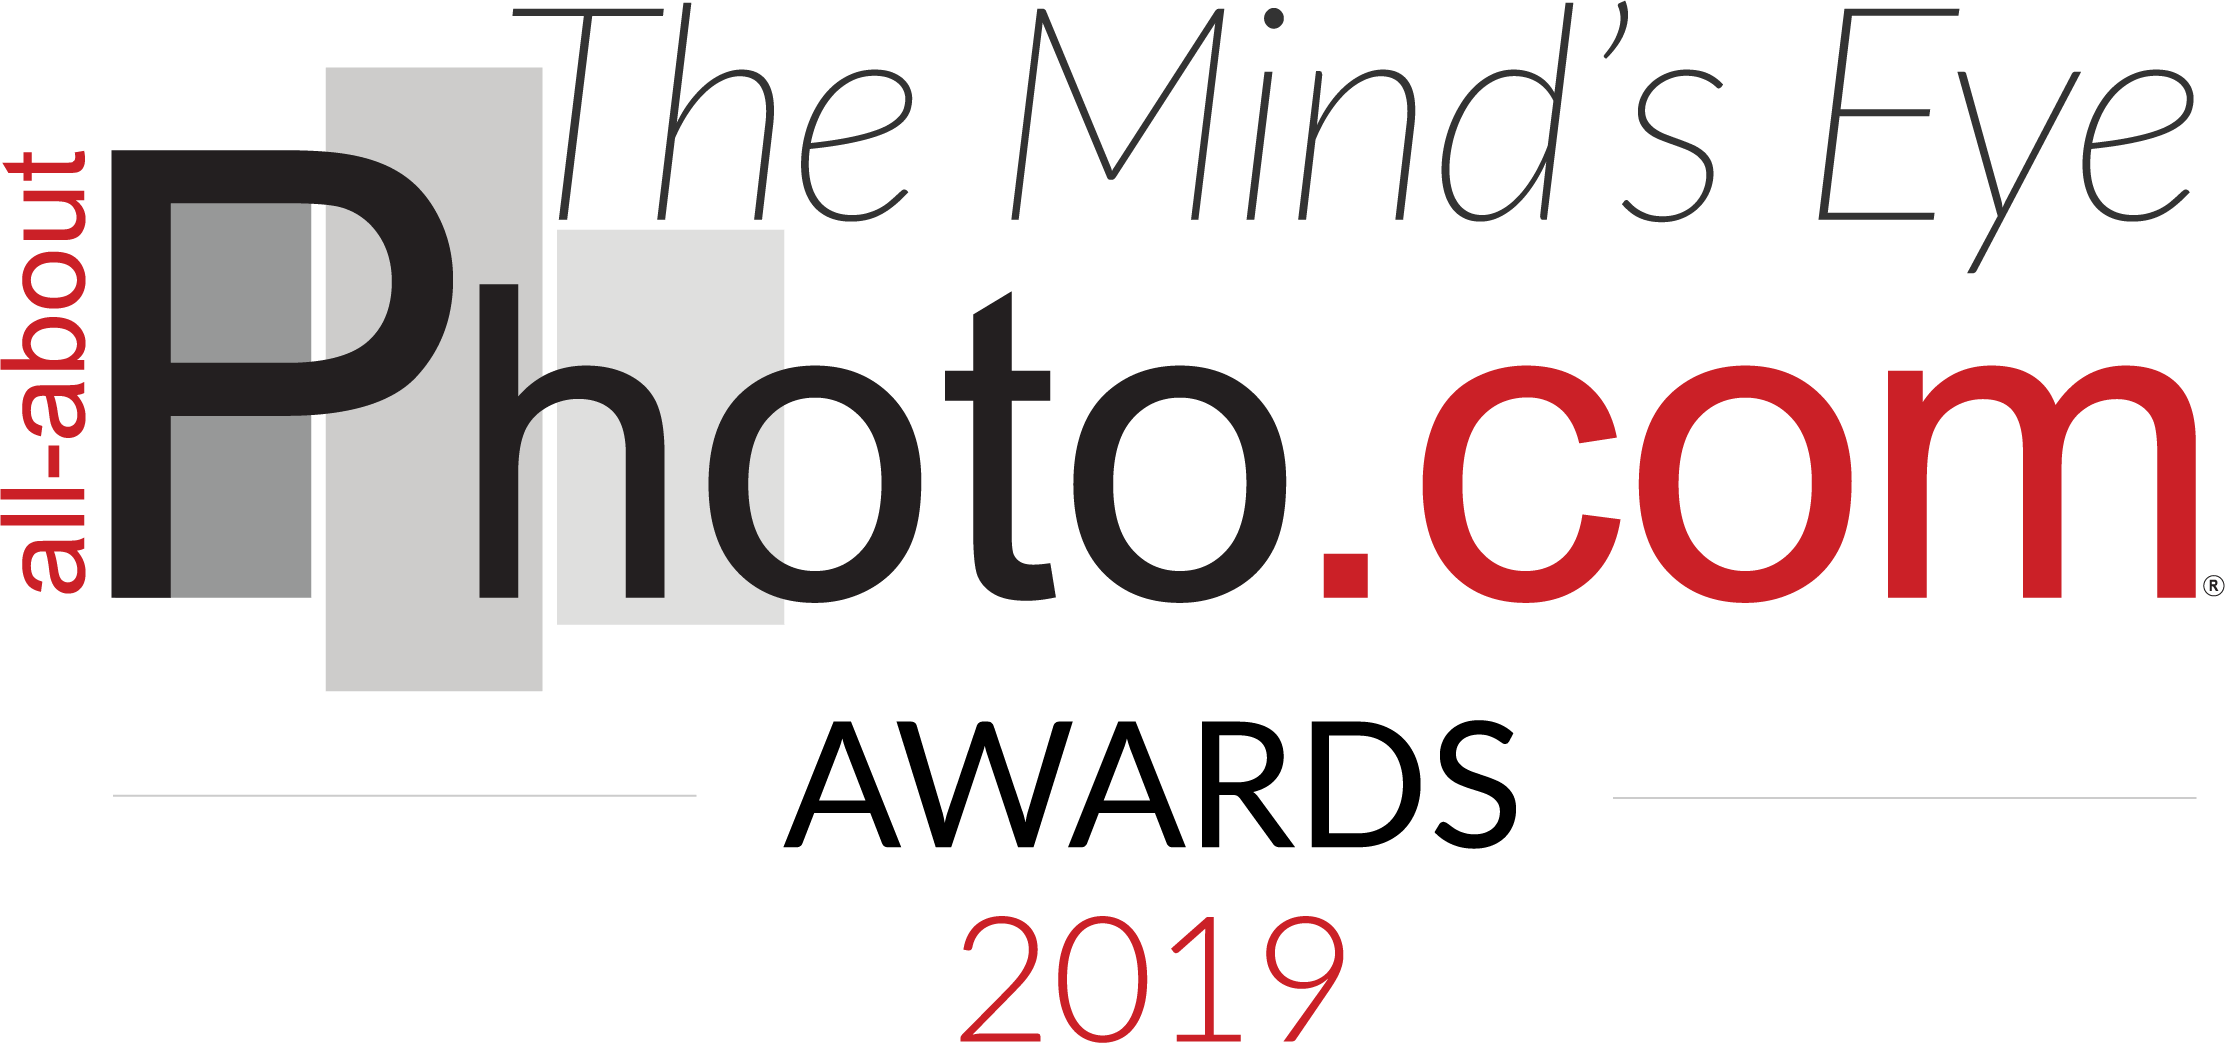 All About Photo Awards 2019 photo contest, All About Photo